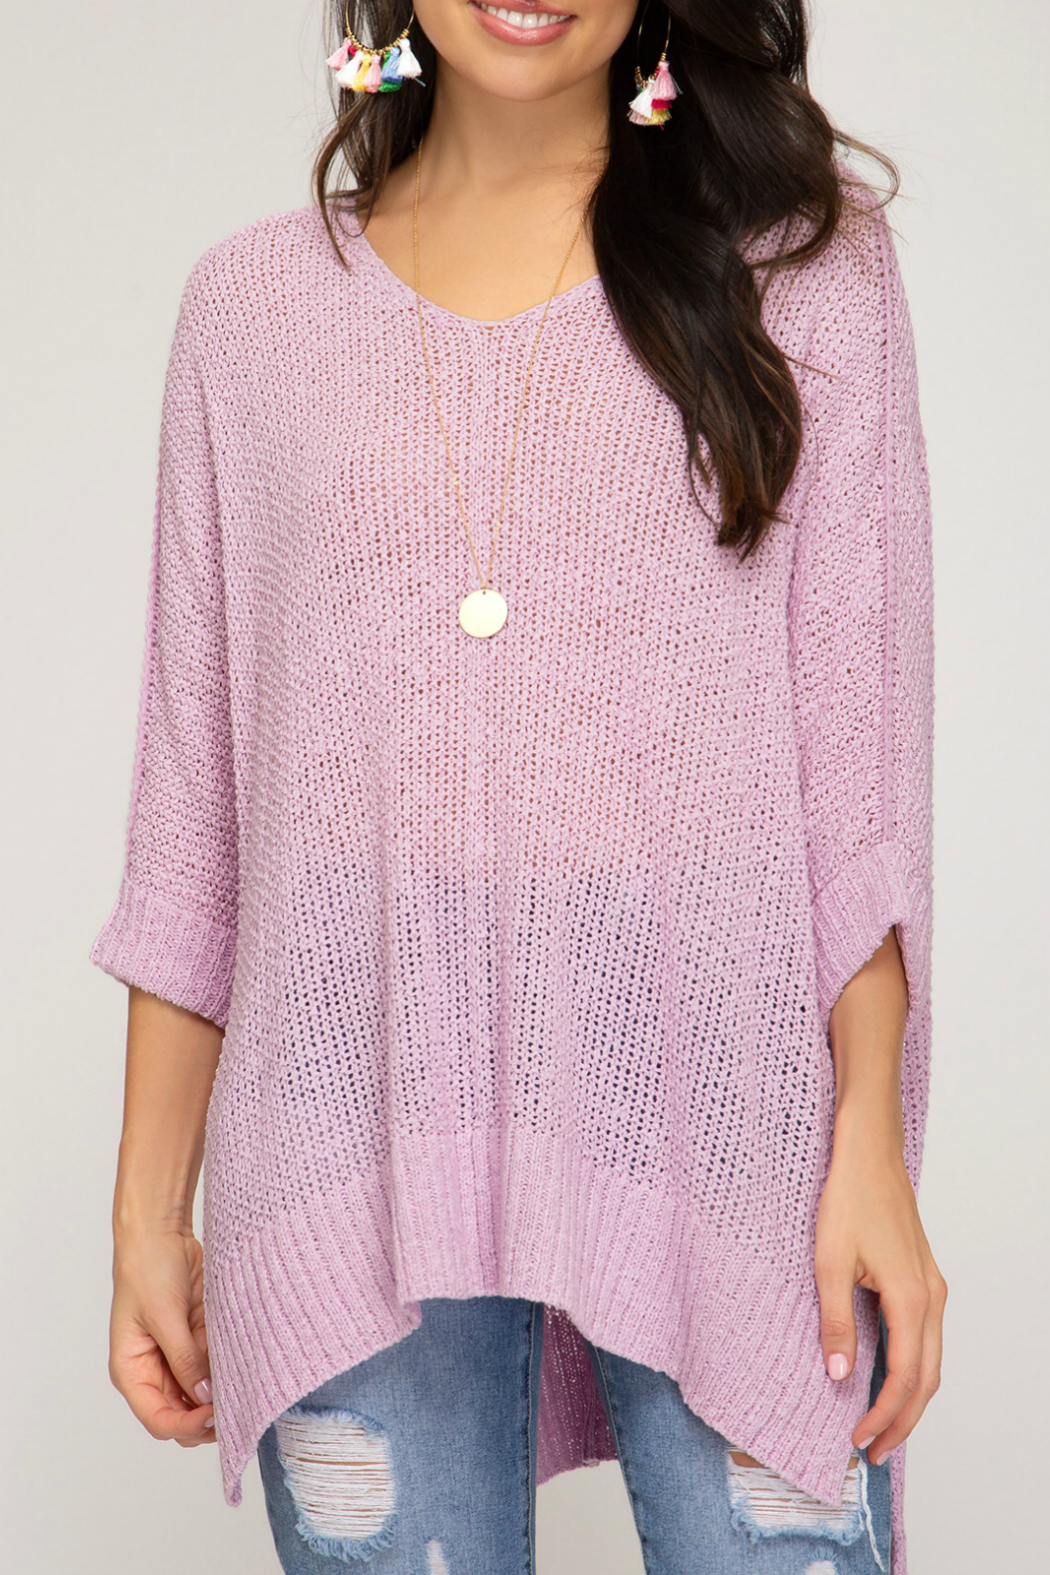 She + Sky HI LOW KNIT SWEATER TOP - Main Image